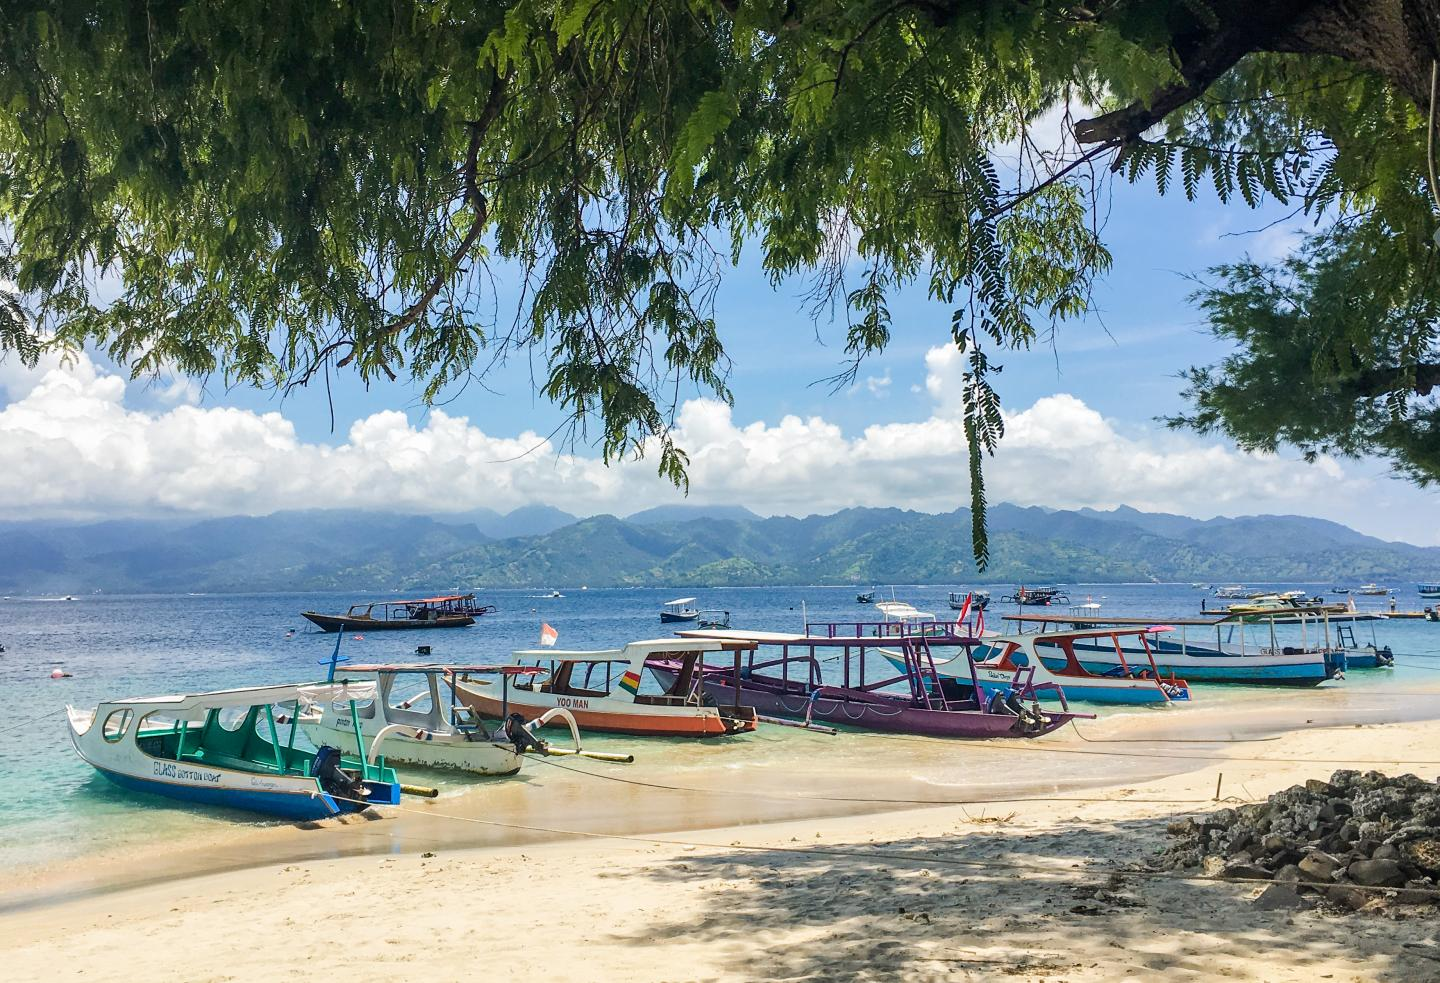 Boats line the shores of a beach in Bali, Indonesia